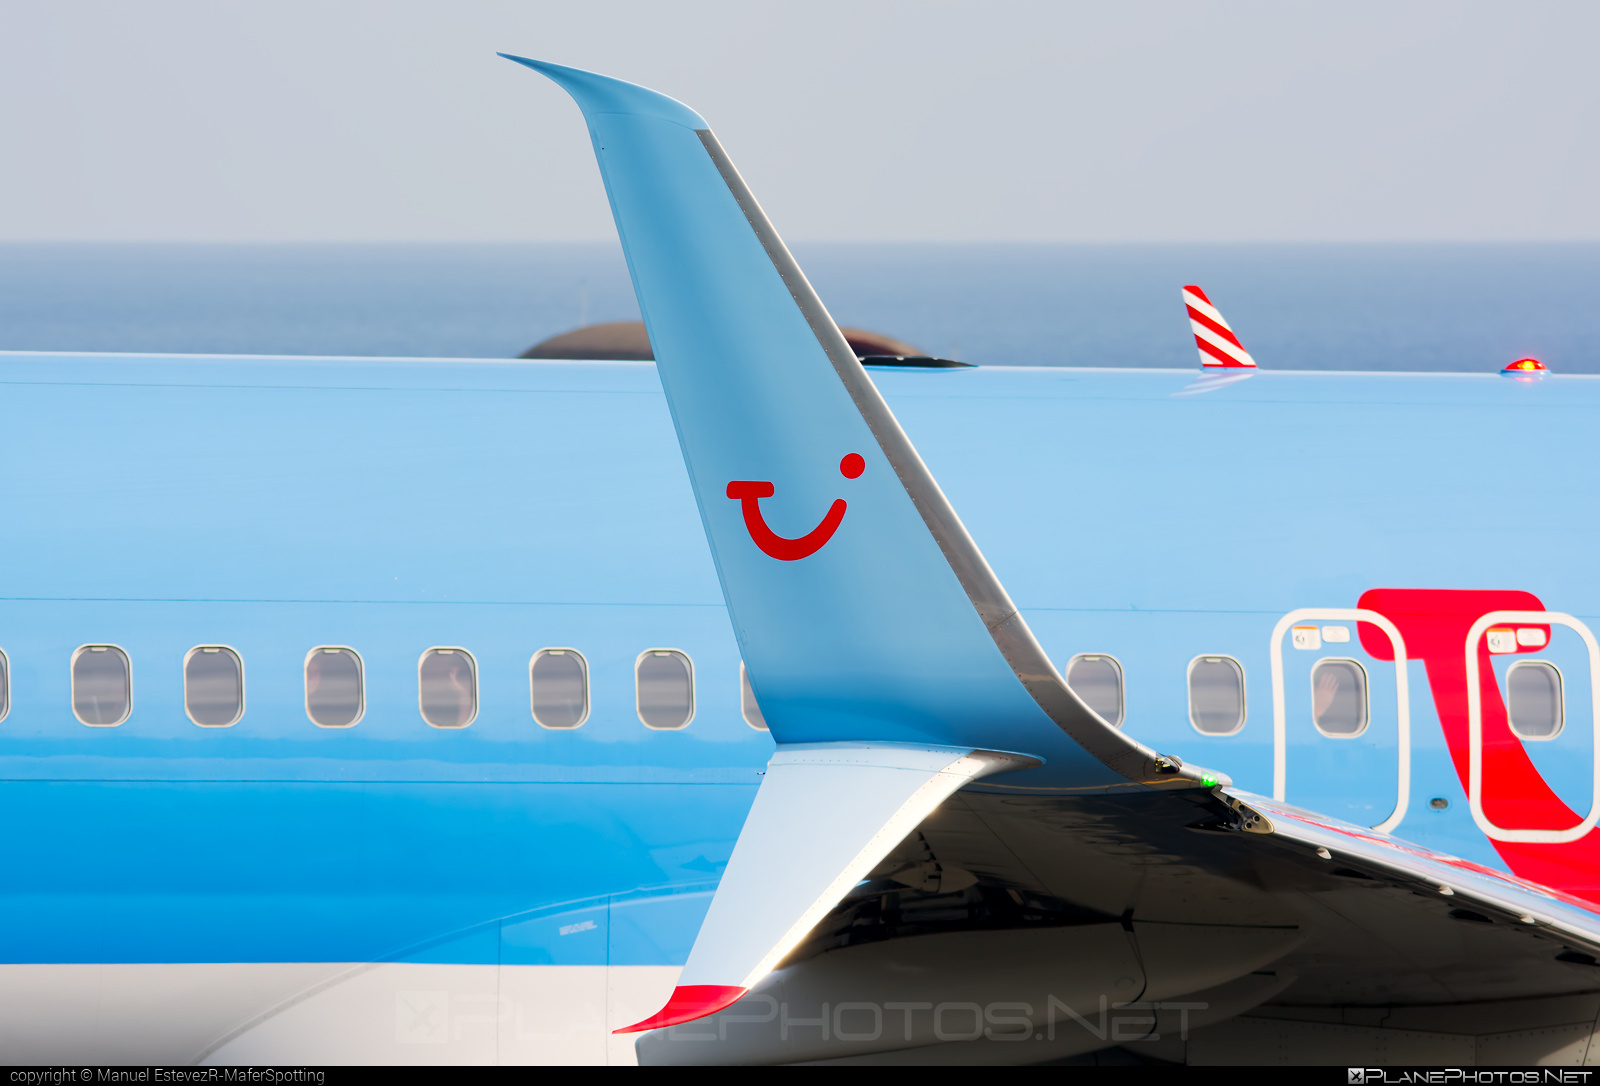 Boeing 737-800 - SE-RFX operated by TUIfly Nordic #b737 #b737nextgen #b737ng #boeing #boeing737 #tui #tuifly #tuiflynordic